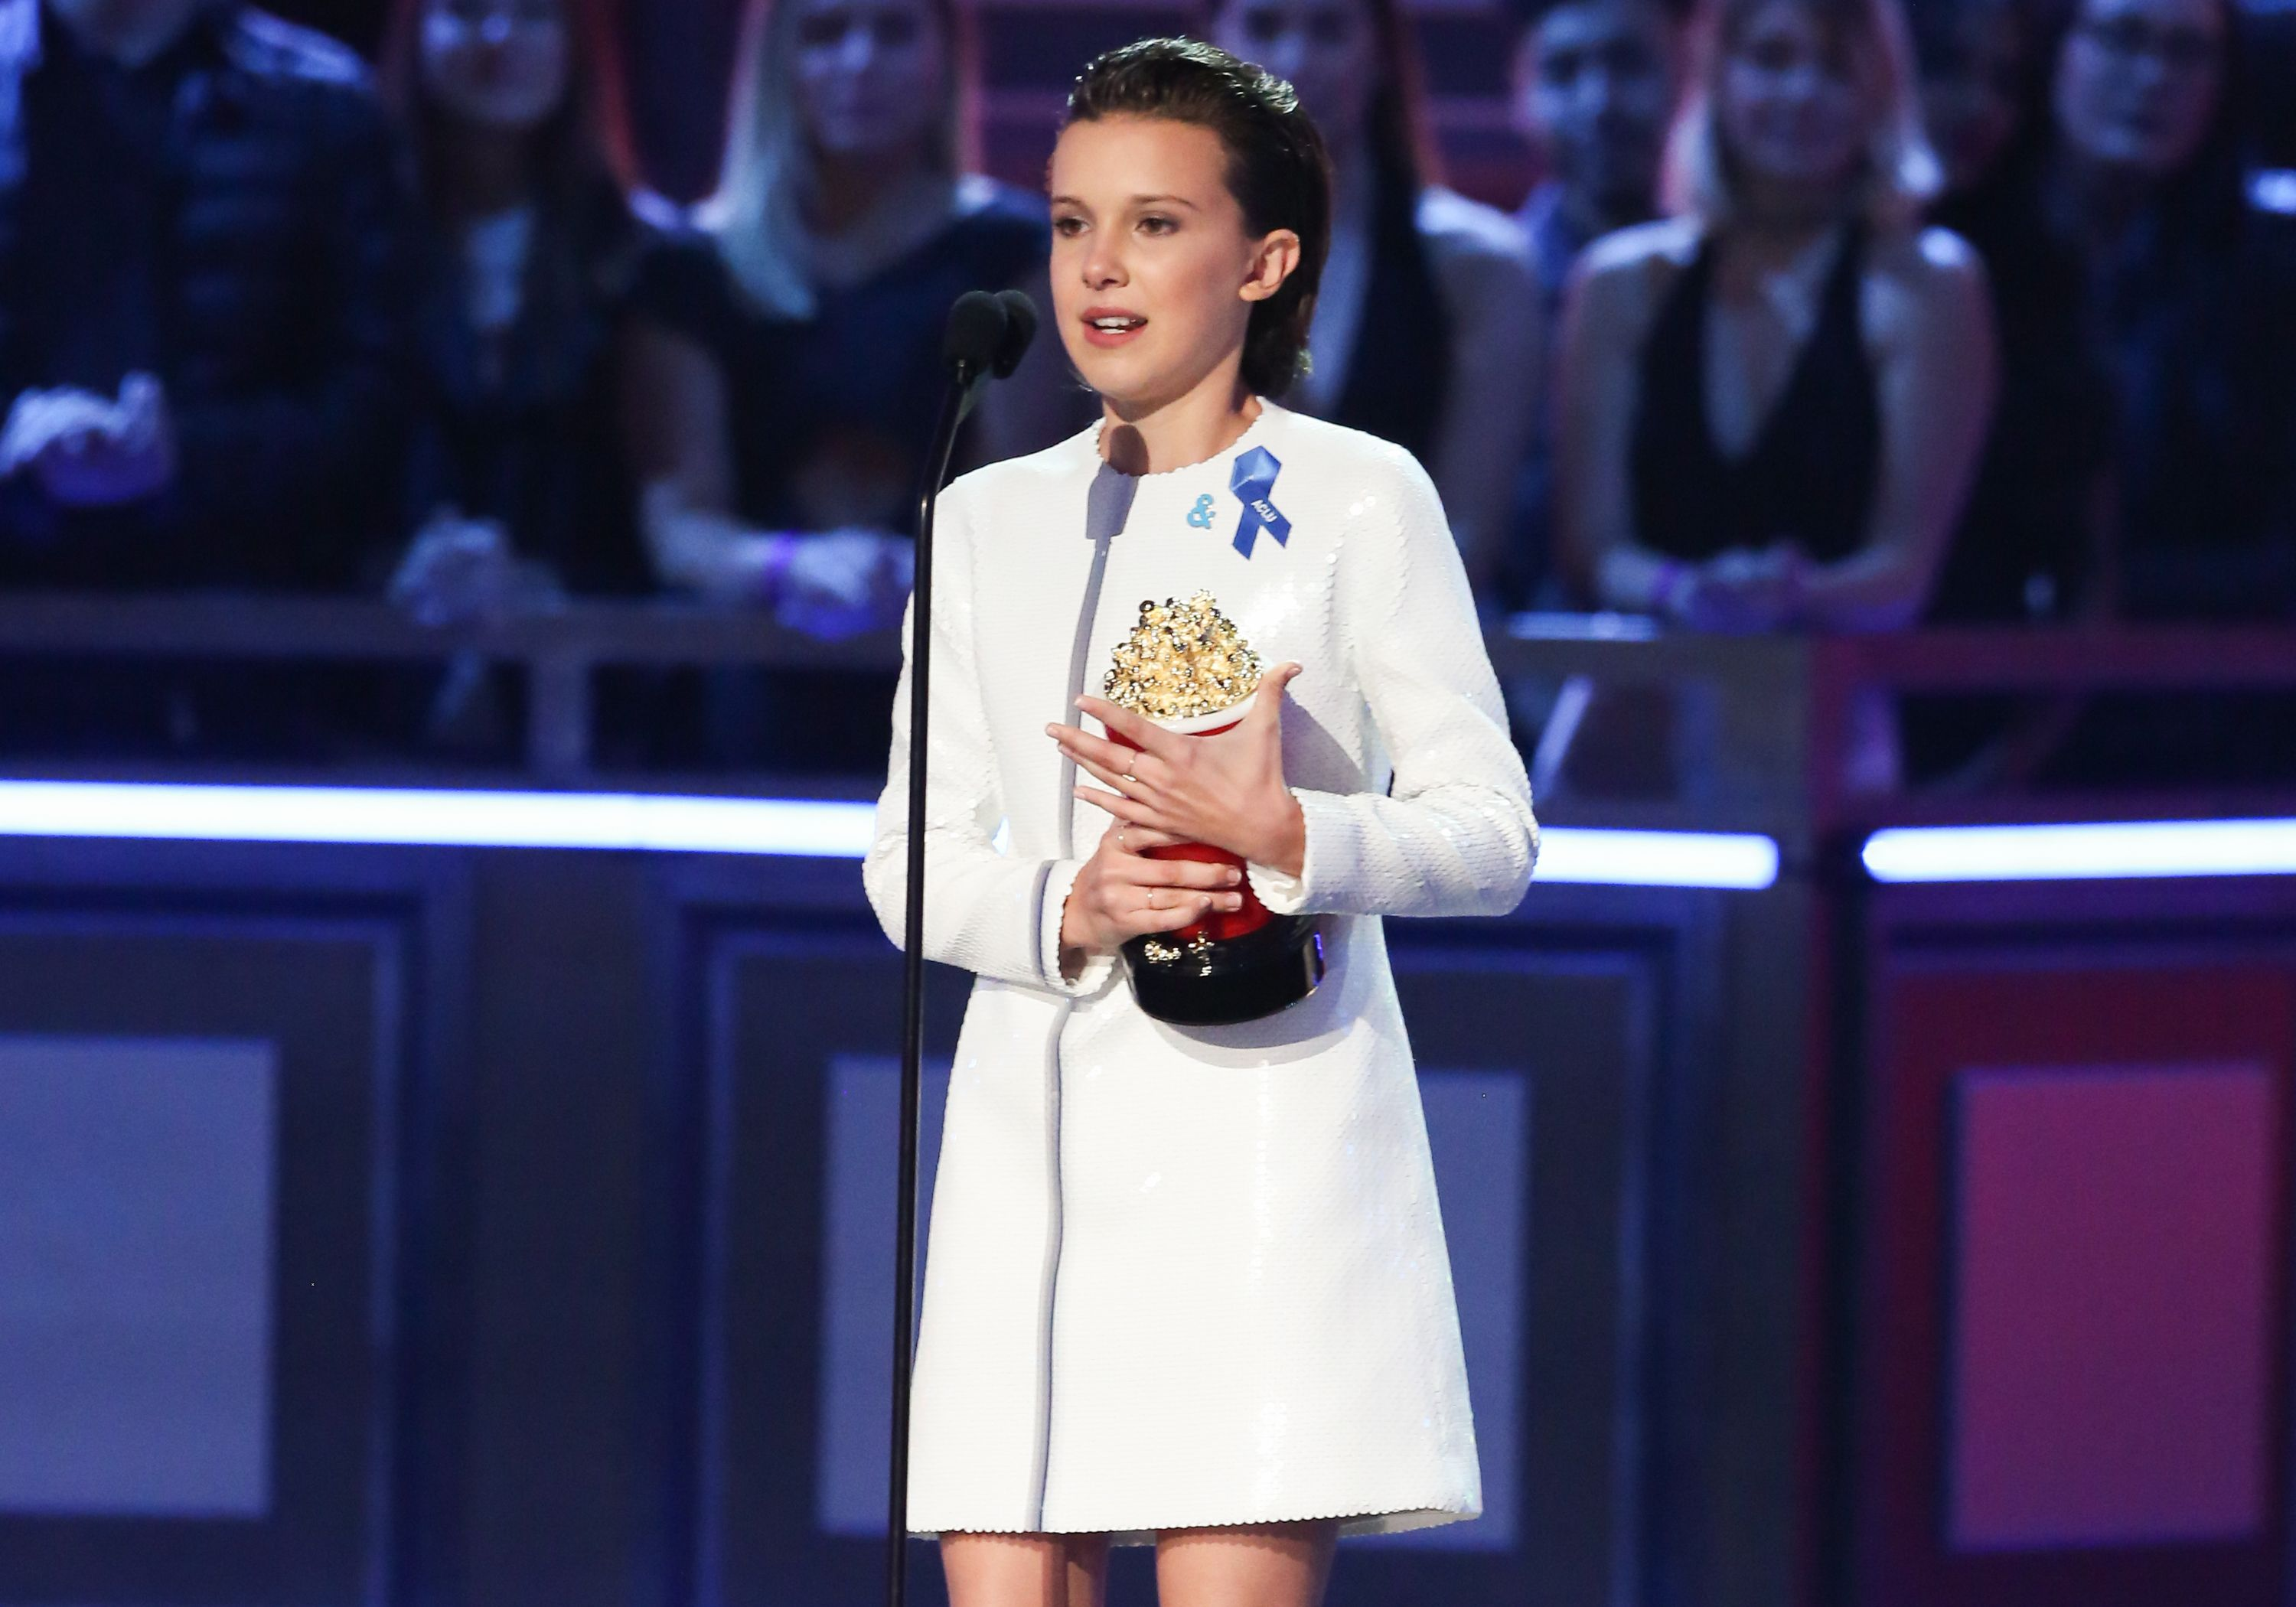 #TakeDownMillieBobbyBrown: Teen leaves Twitter after she was depicted in homophobic memes